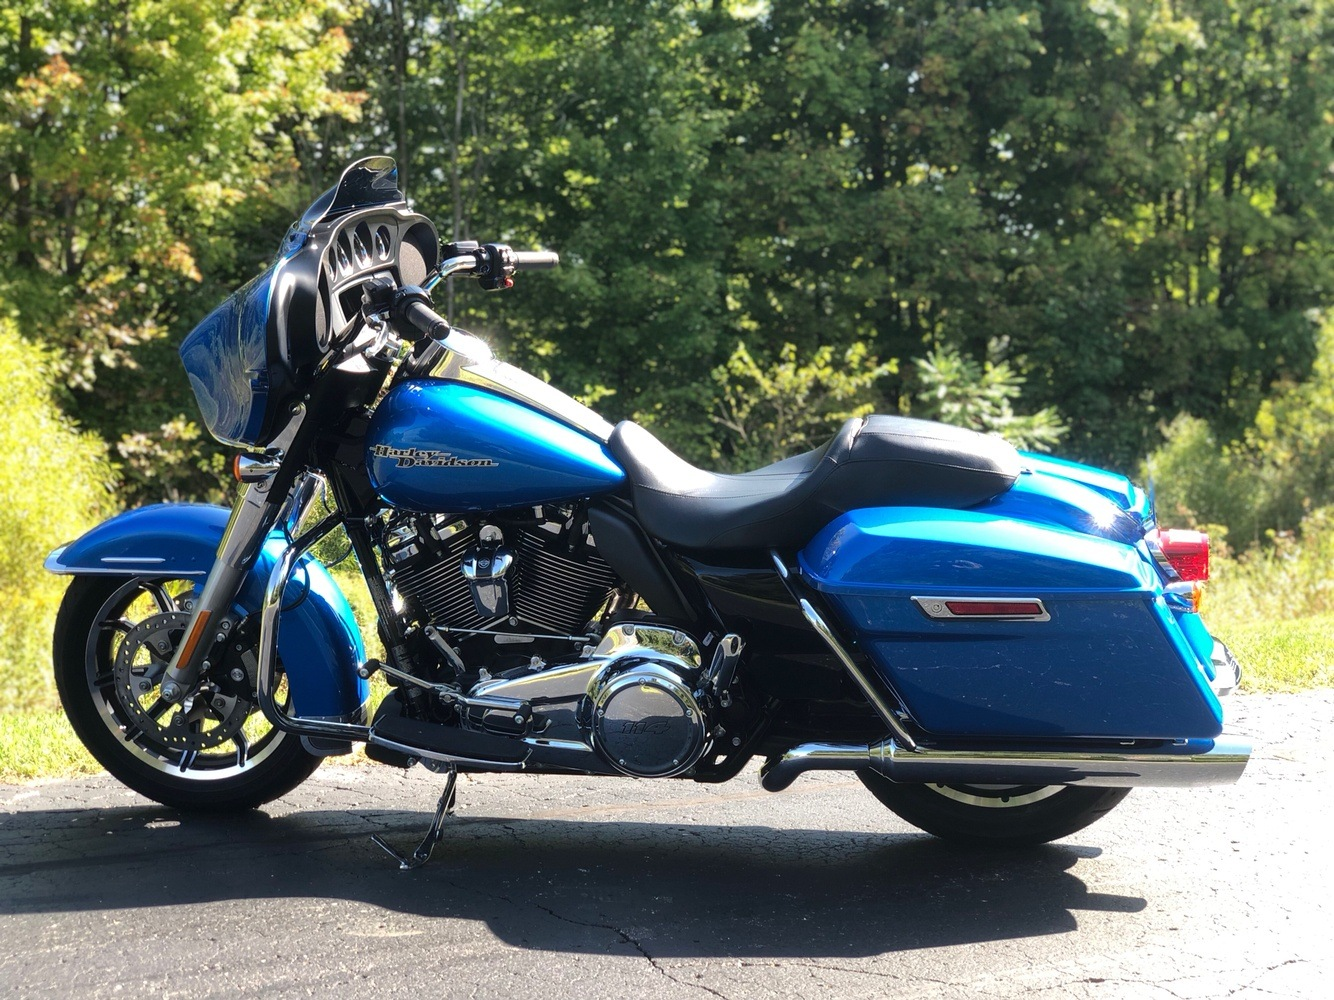 2020 Harley-Davidson Electra Glide Standard in Portage, Michigan - Photo 3